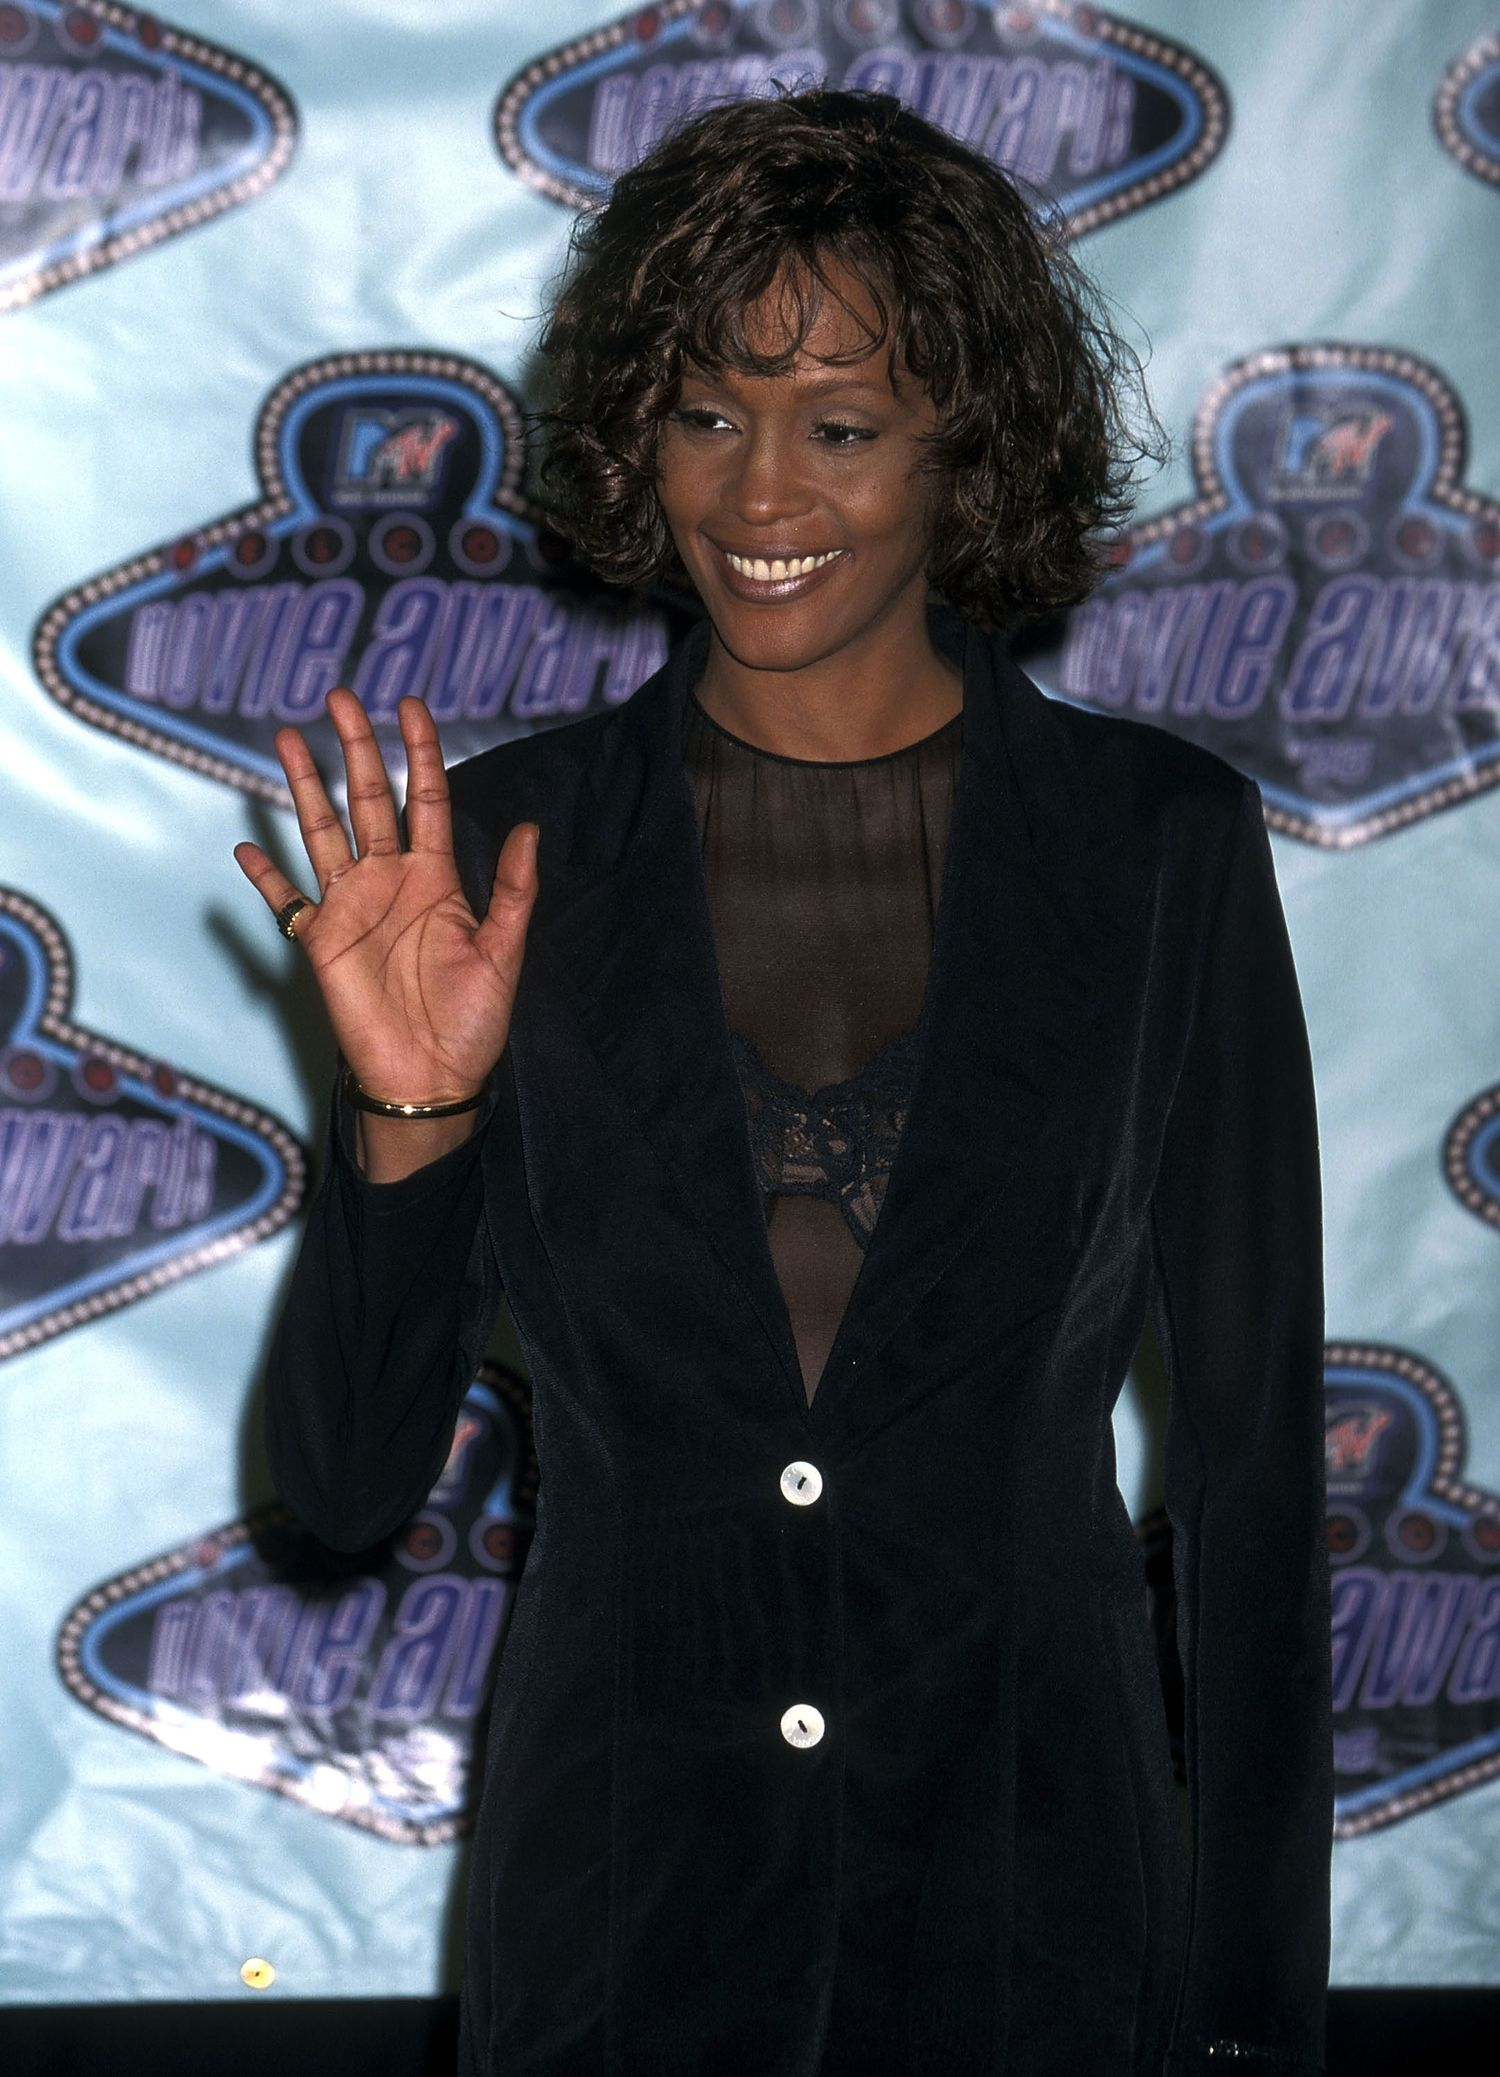 Singer Whitney Houston attends the Fifth Annual MTV Movie Awards on June 8, 1996 at Walt Disney Studios in Burbank, California. (Photo by Ron Galella, Ltd./WireImage)